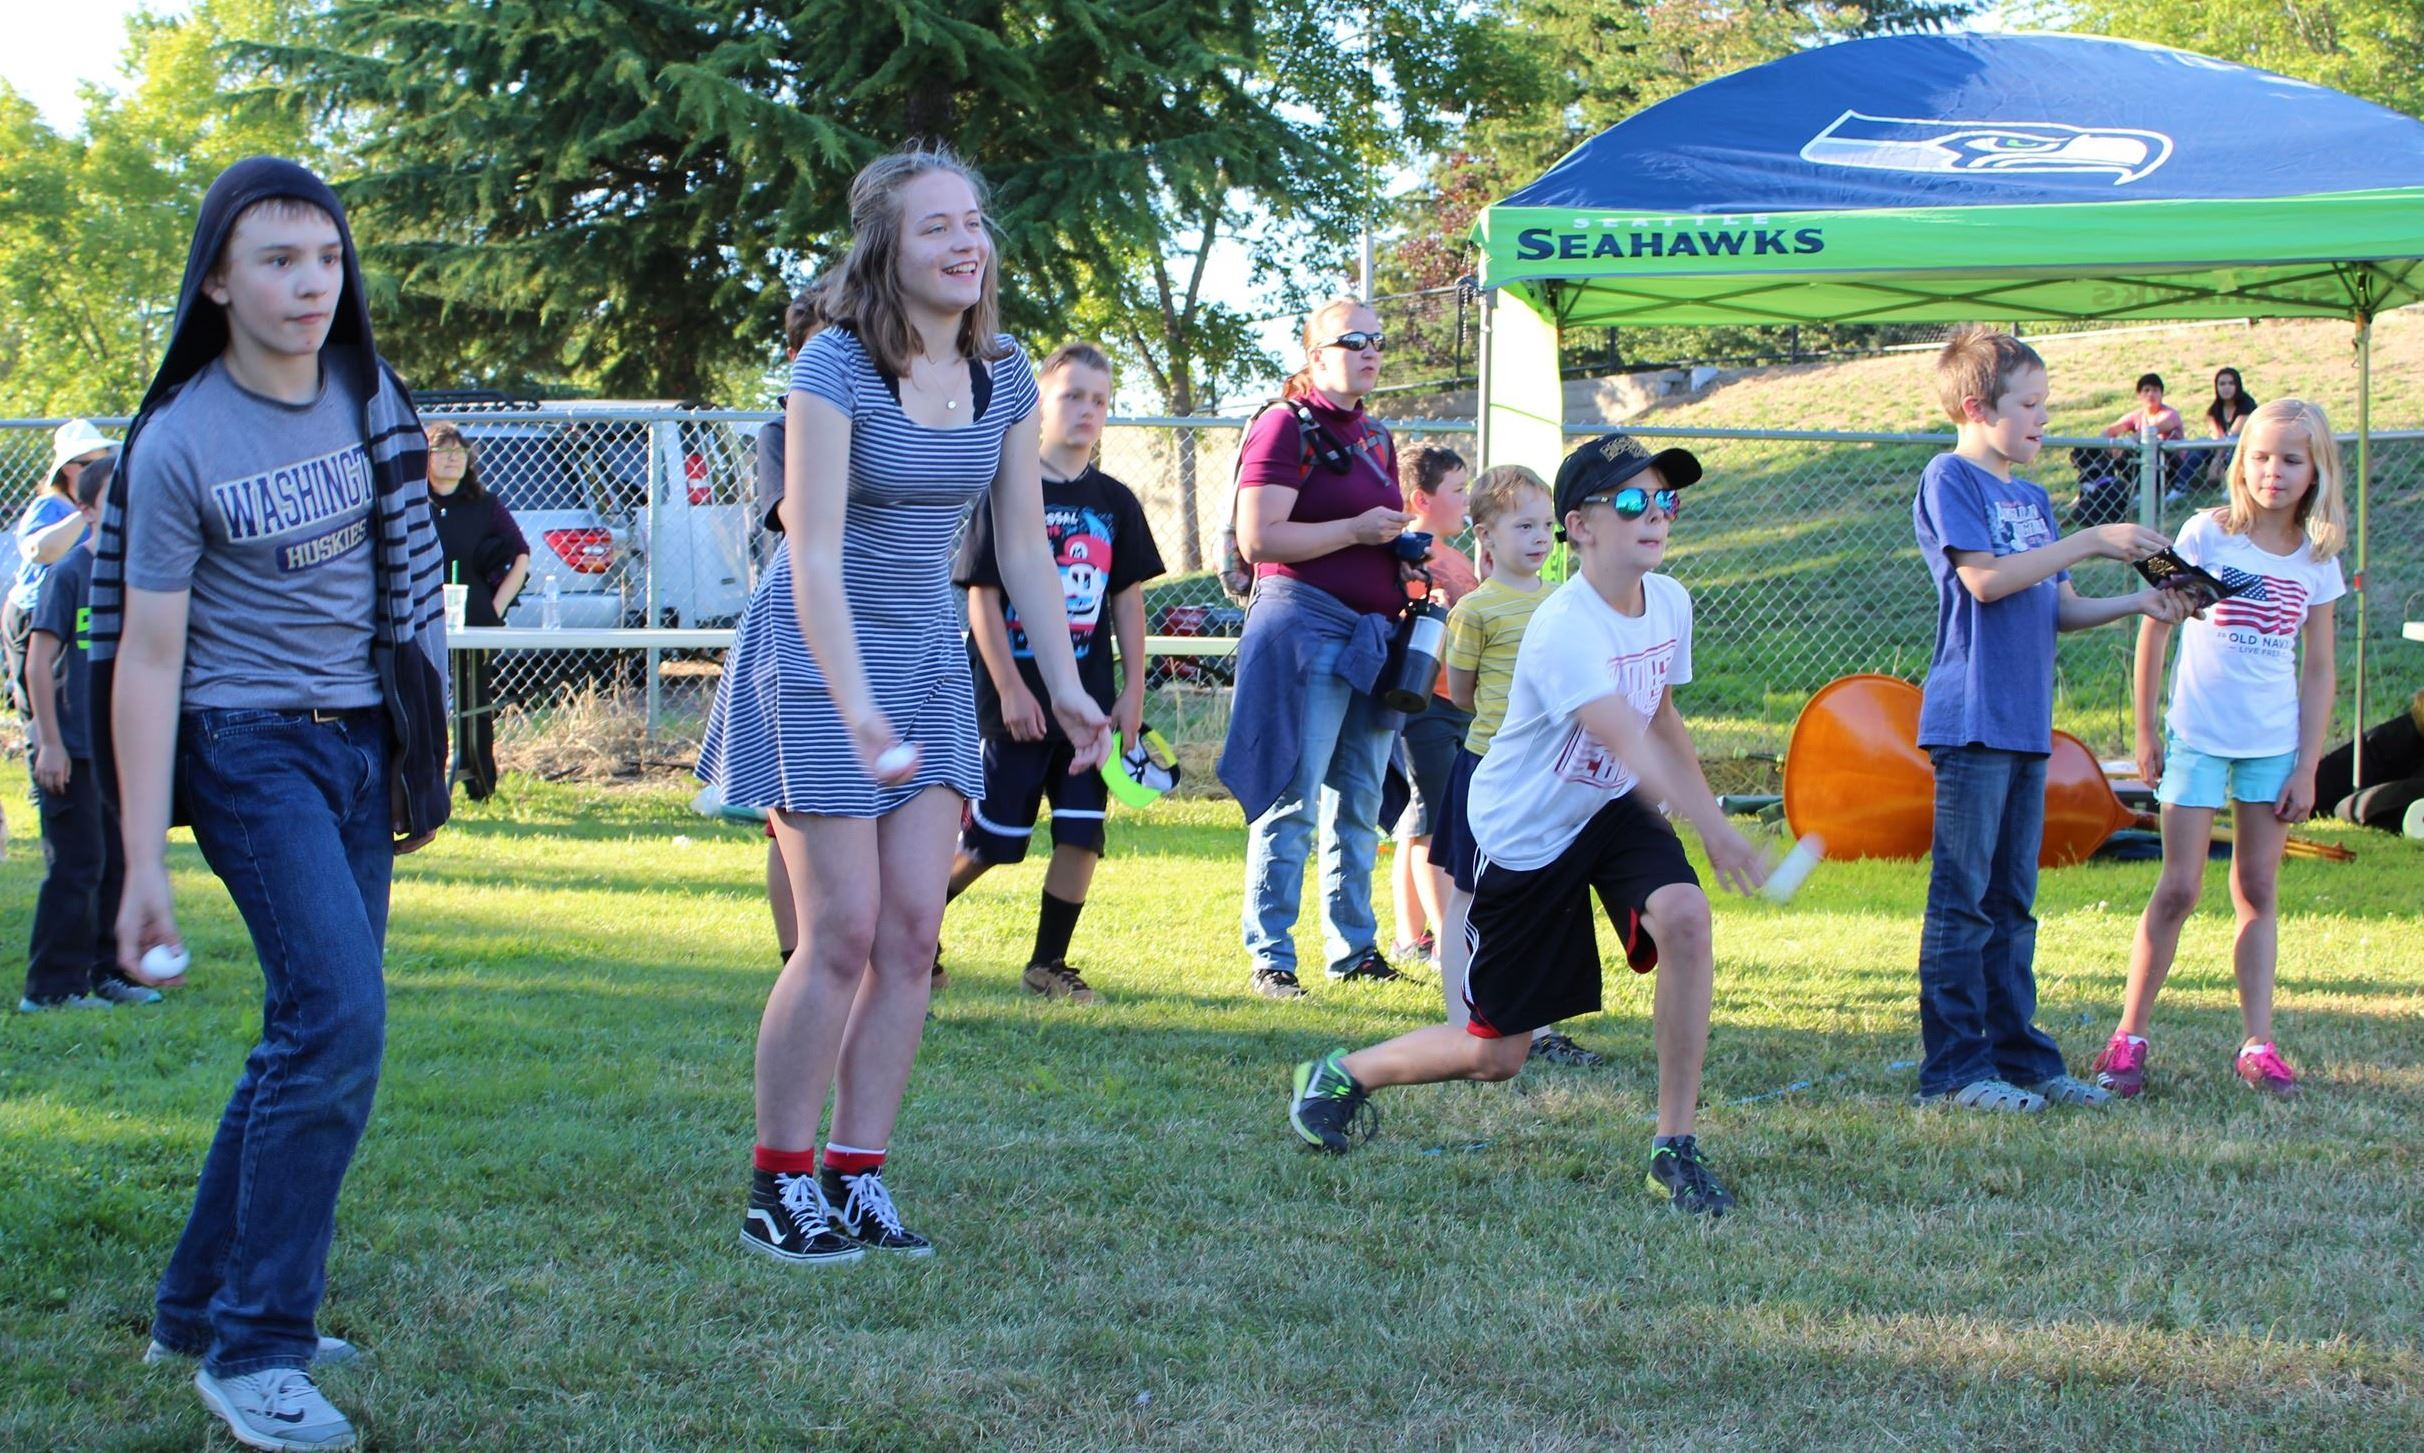 Egg Toss is one of the children's games.